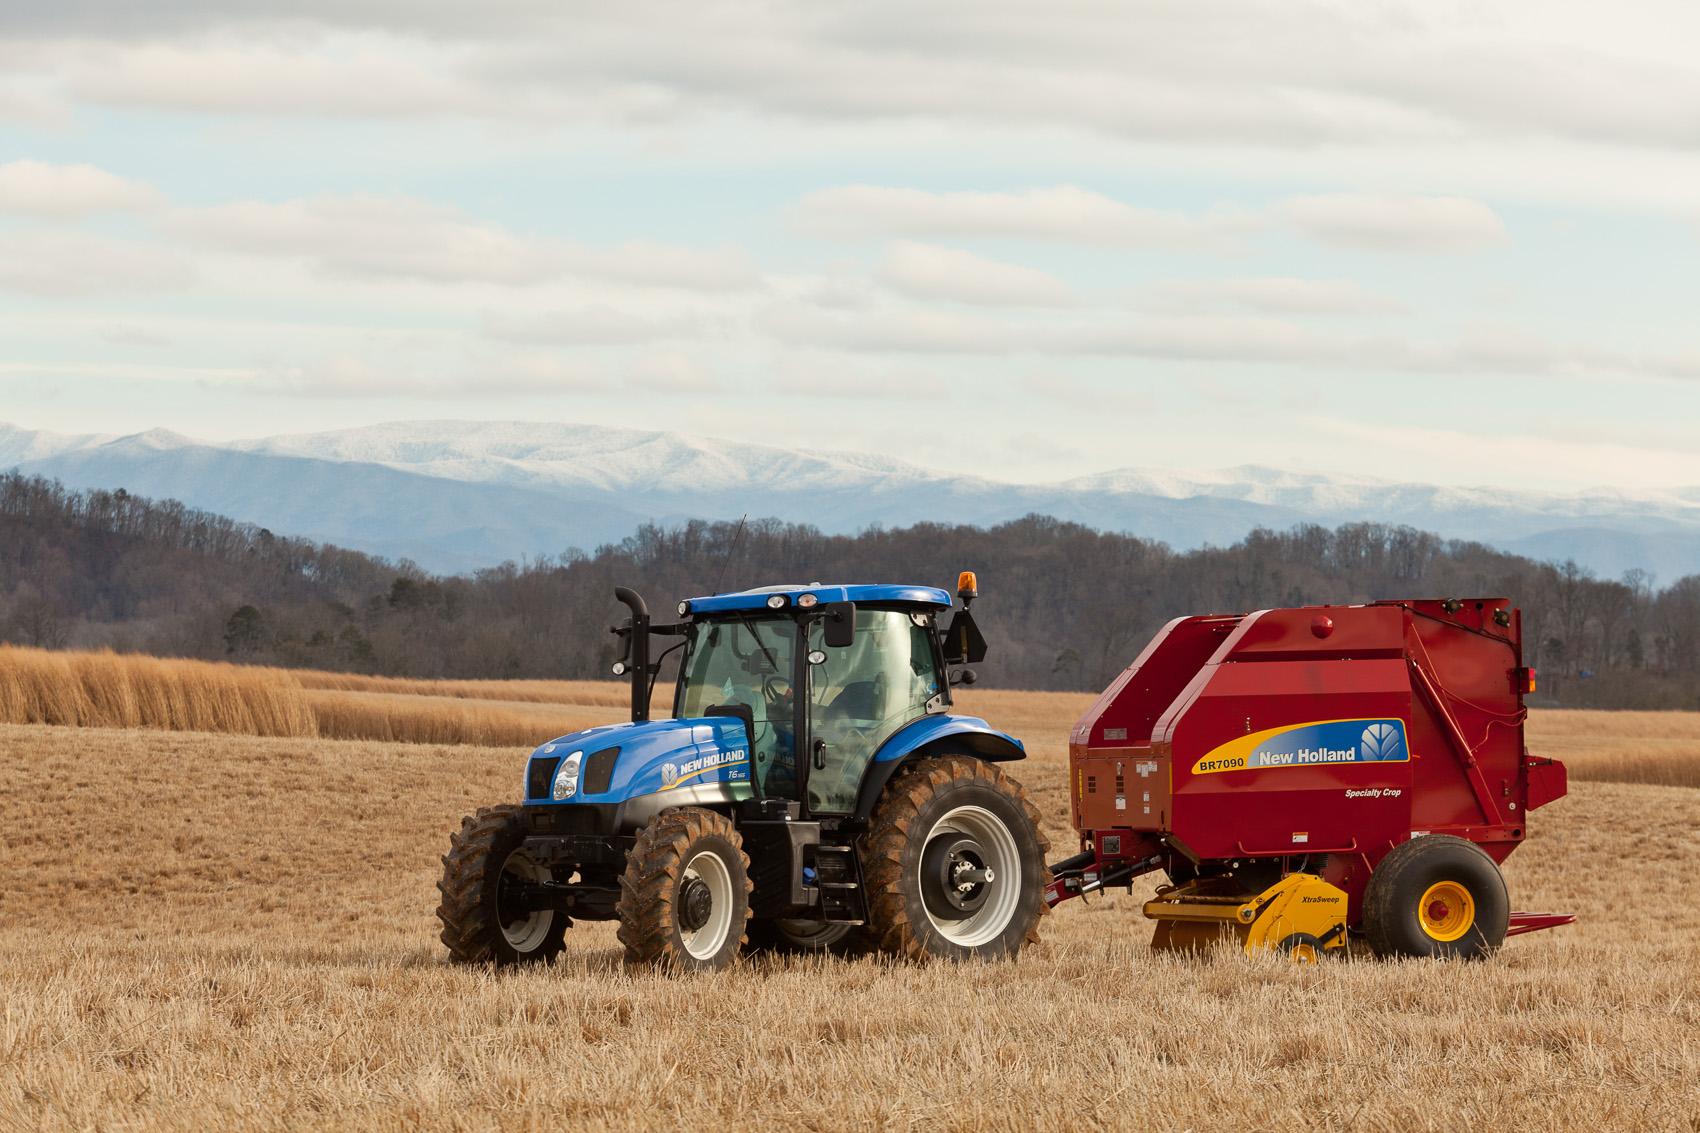 New Holland T6.165 Tractor with BR7090 Specialty Crop Round Baler | J. Eldon Zimmerman Photography | Lancaster, PA Agriculture Photographer